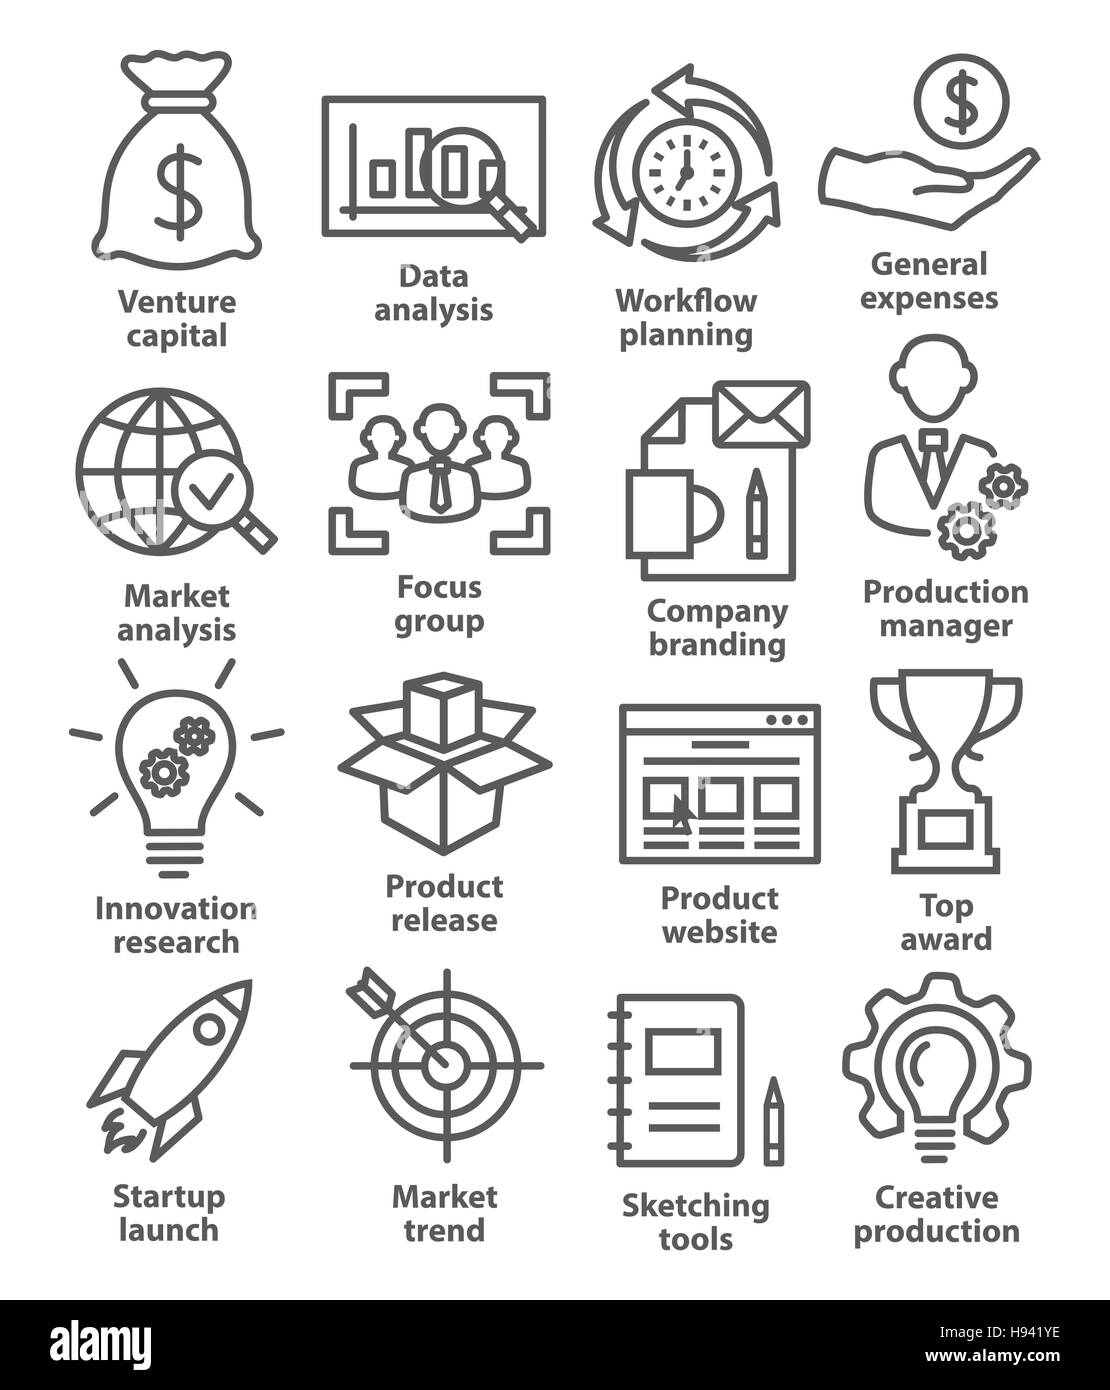 Startup business and development icons in line style on white - Stock Image